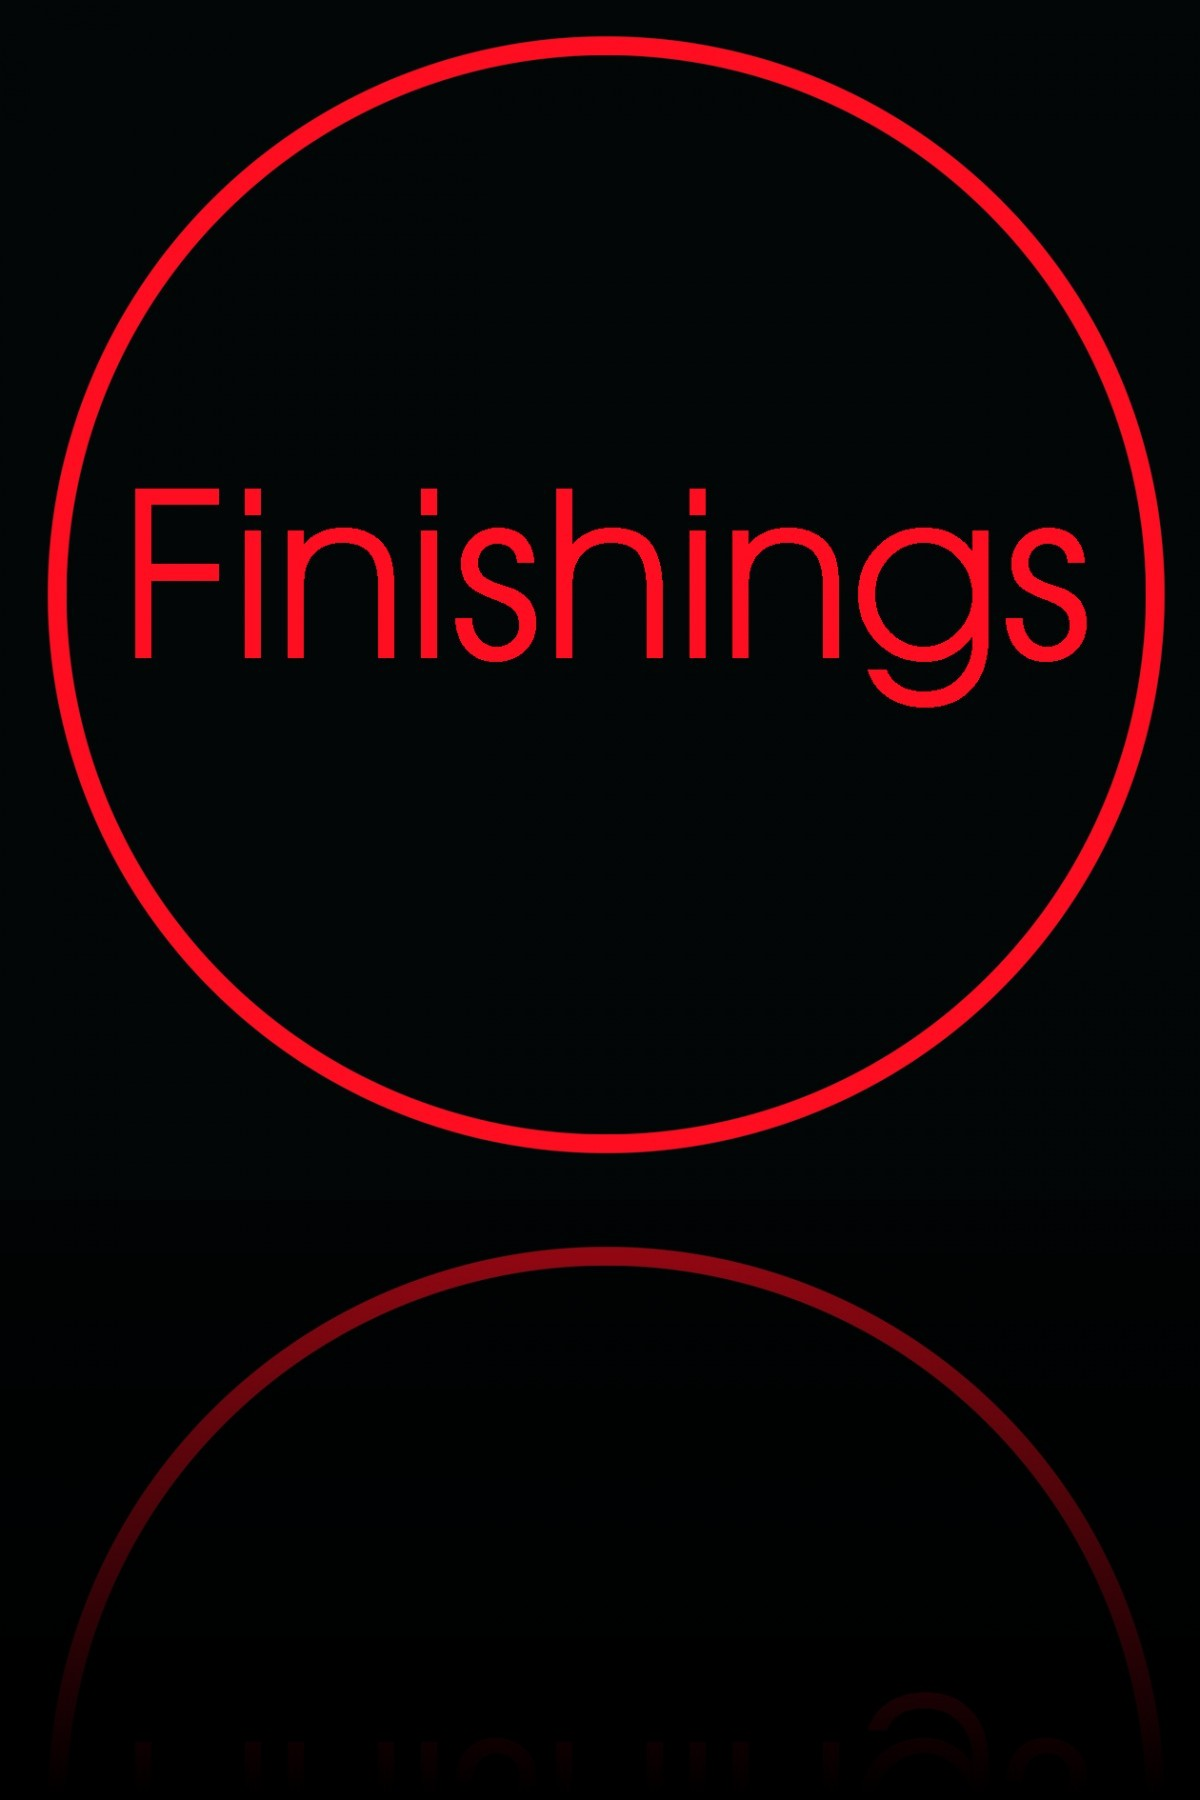 Finishings